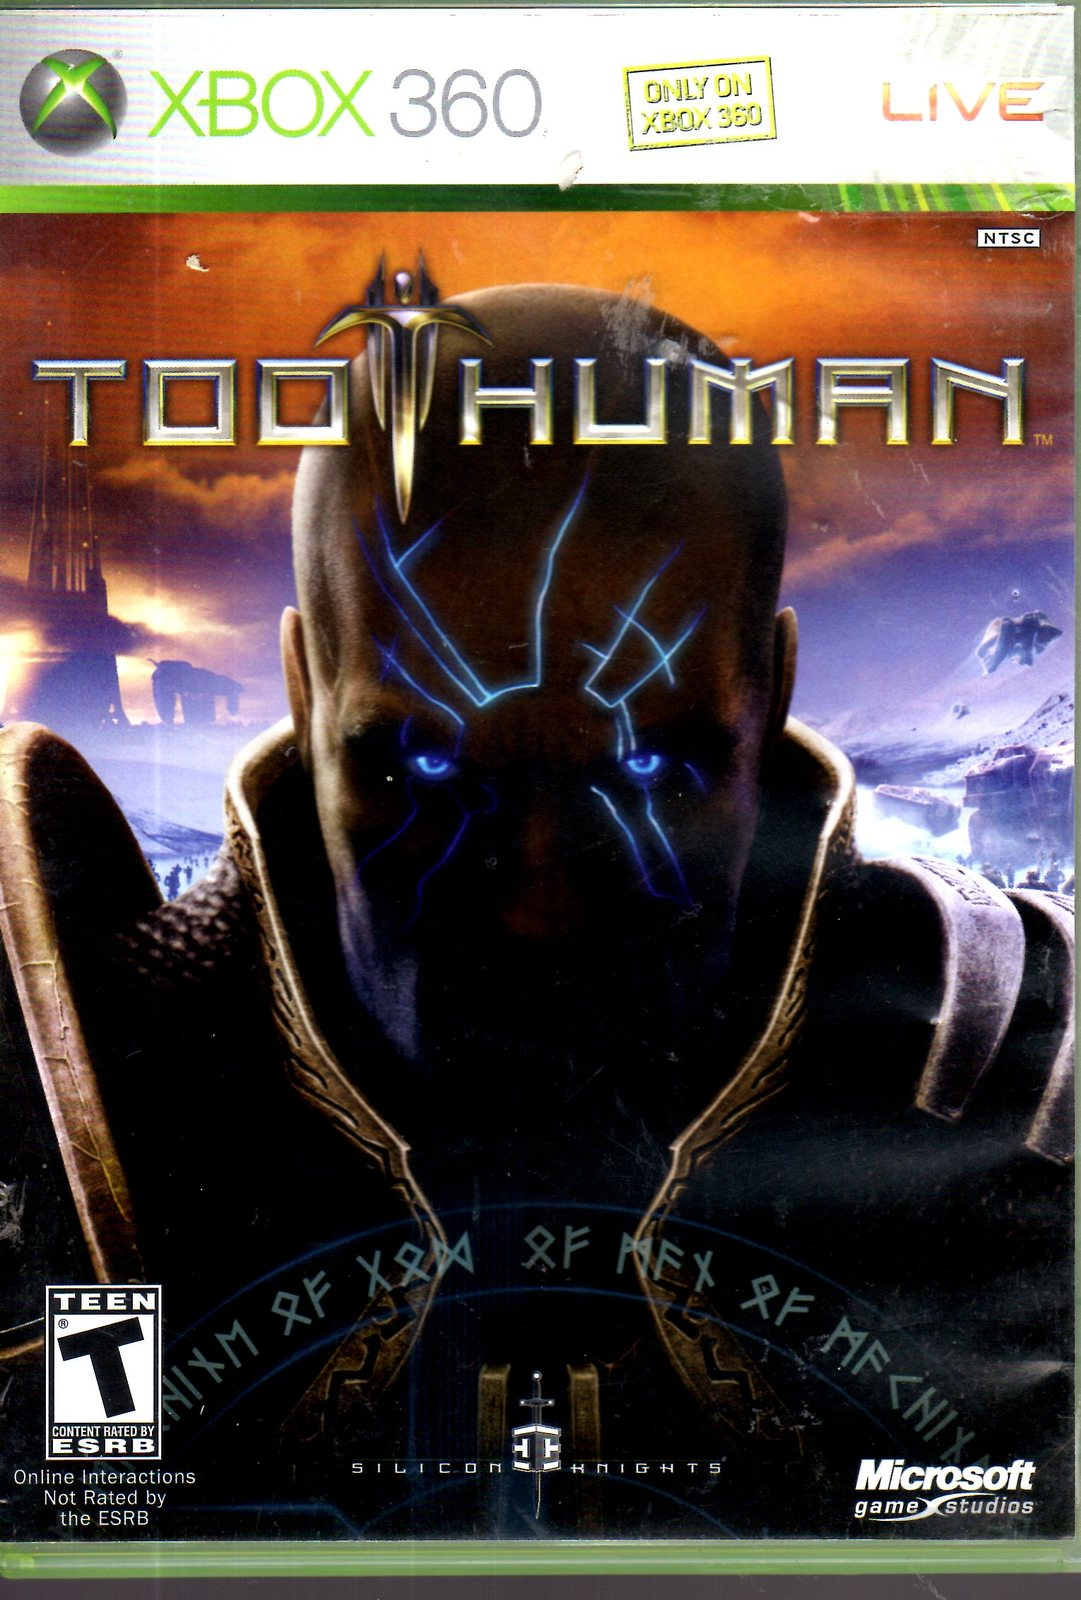 Primary image for XBox 360 - Too Human